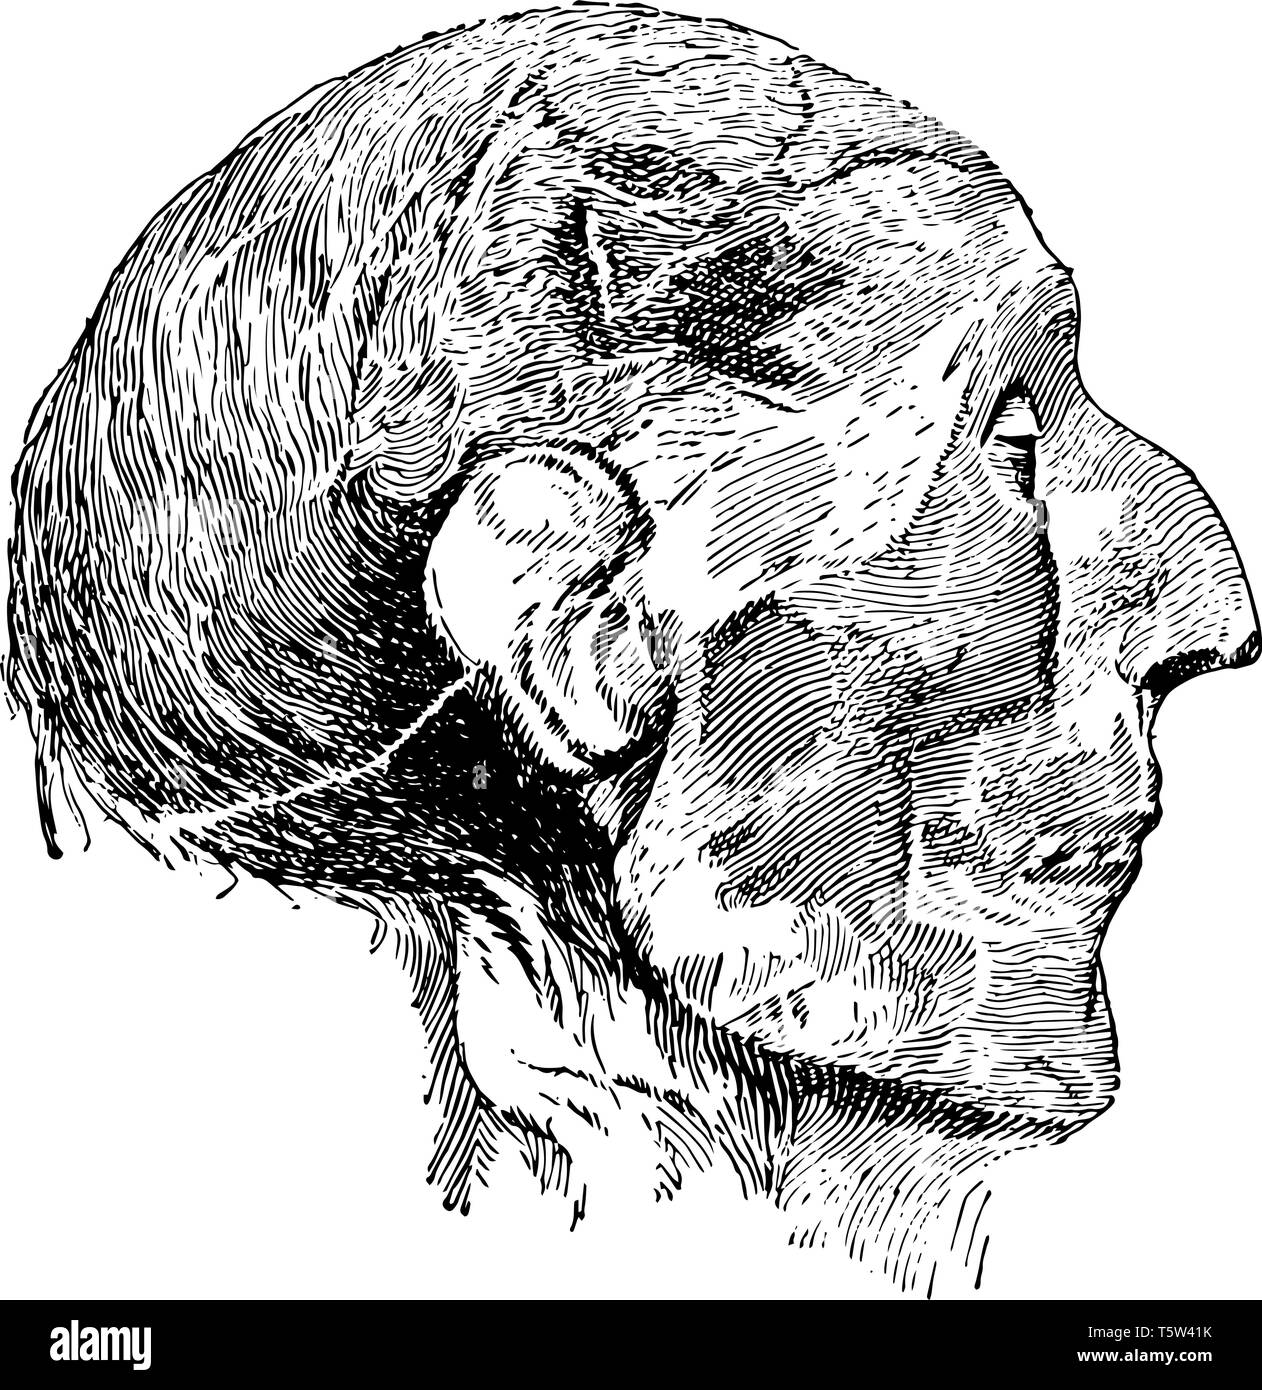 Head of Mummy of Ramses II was preserved in the Egyptian Museum in Cairo, vintage line drawing or engraving illustration. - Stock Vector